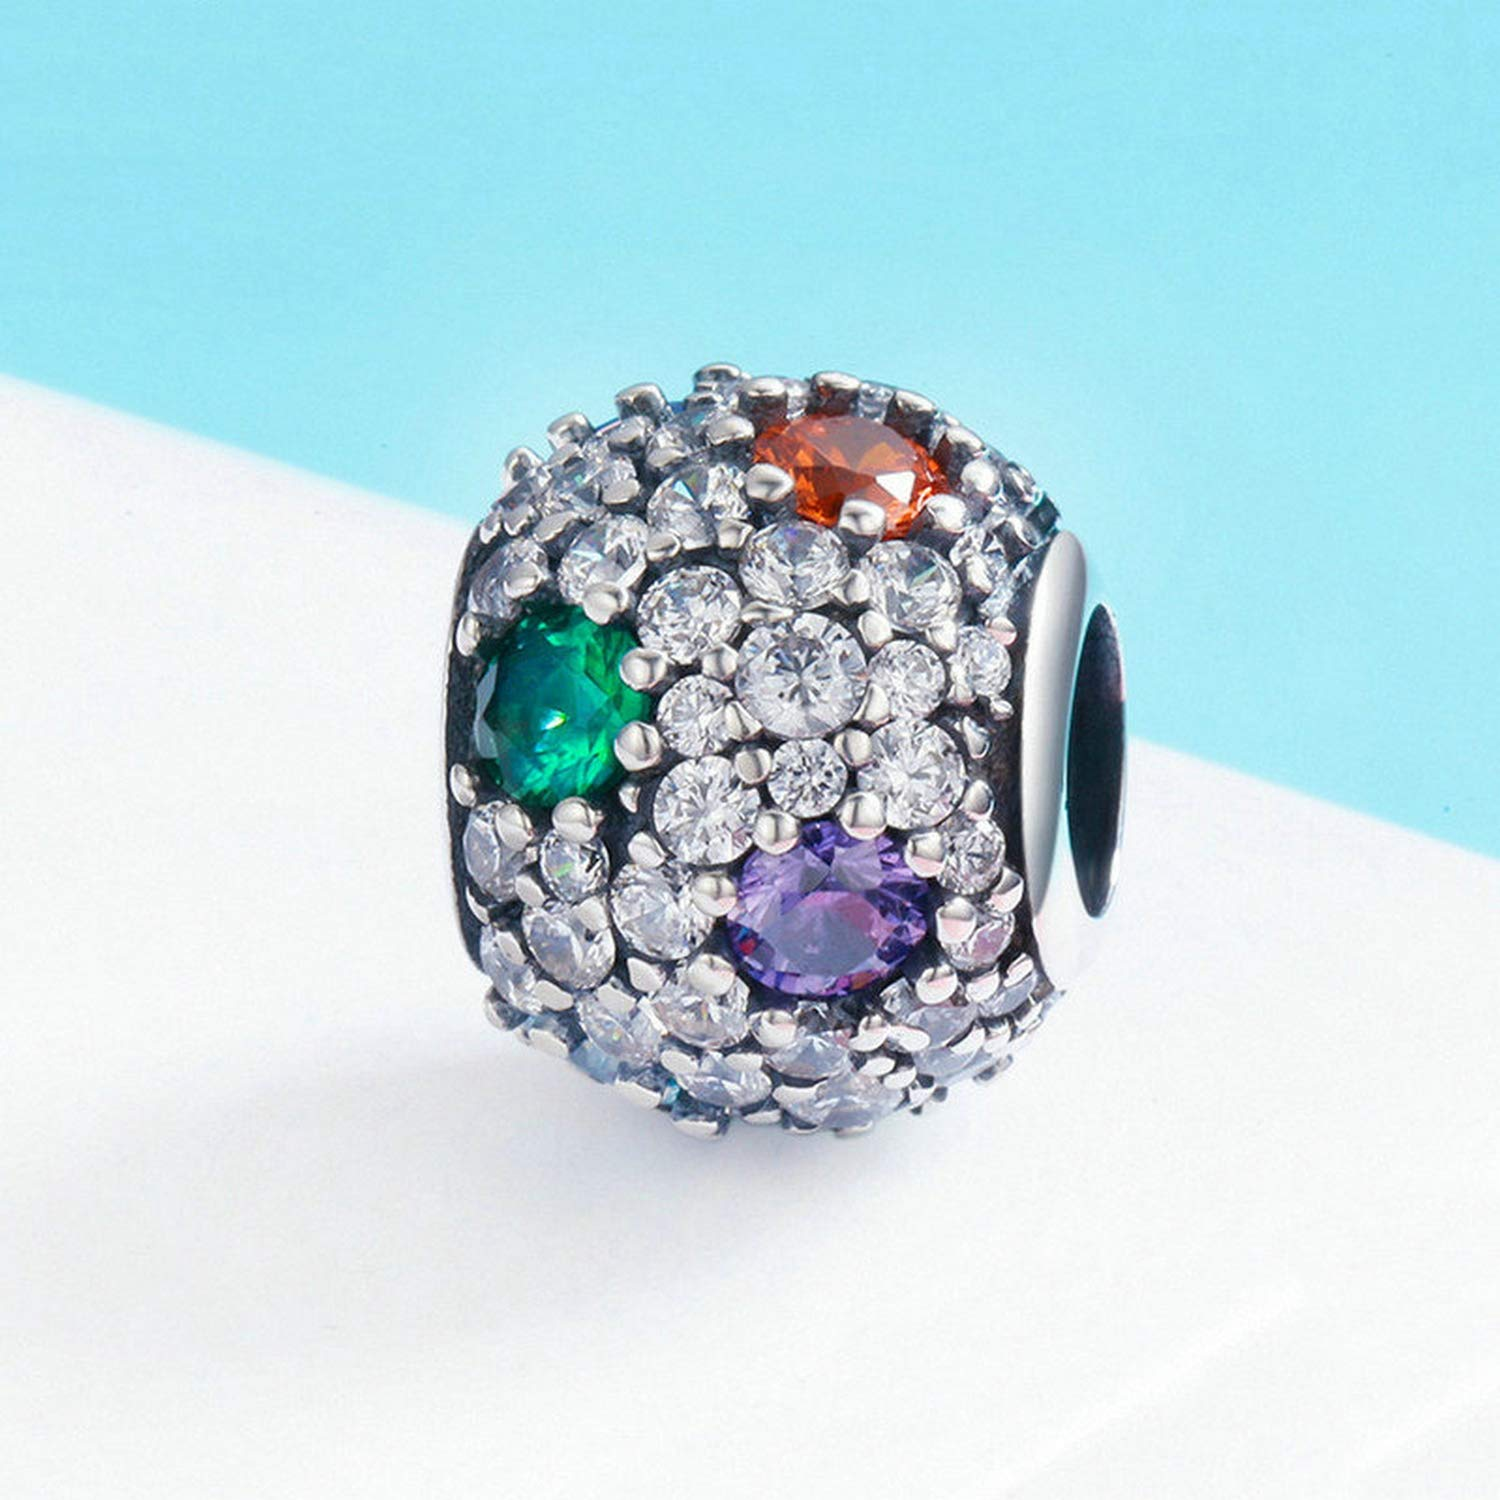 EverReena Dazzling Clear Colorful Elegant CZ Stone Pave Charm Silver Beads Bracelets